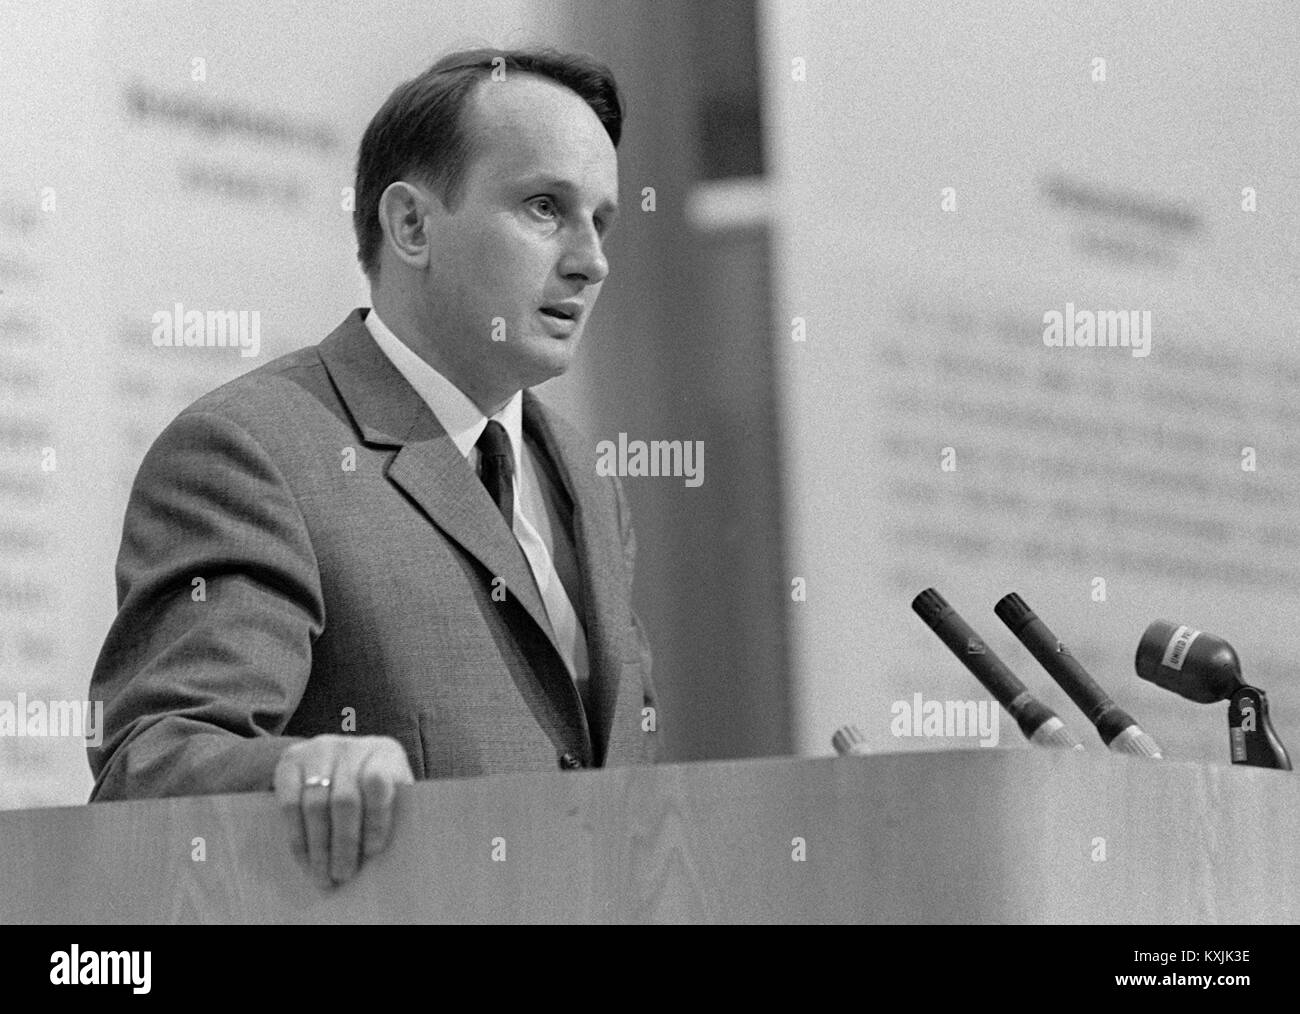 Rolf Frankfurt author rolf hochhuth on 28 may 1968 at an event against the german